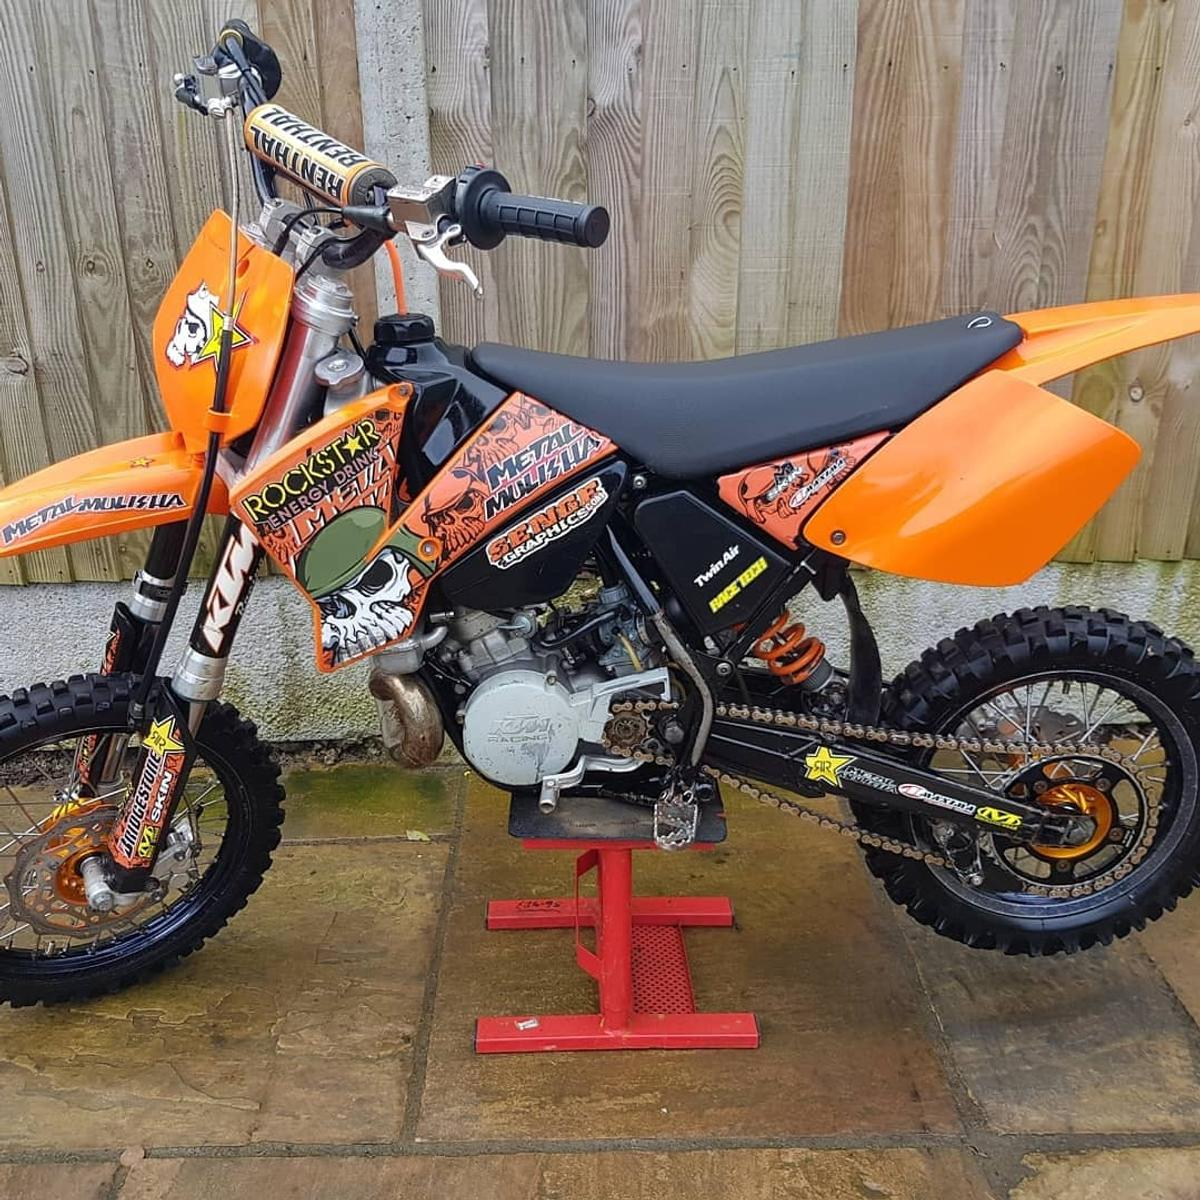 Ktm 65 sx 2007 Pro circuit pipe Excel rims with talon hubs Vforced reeds Renthal bars New rear mudguard New filtter New coolent New gear oil New plug New grips Starts and runs as it should £750 ovno Px welcome 2strokes only Local delivery available Delivery can be arranged anywhere in UK via a trusted courier for £100 Located in Canterbury Kent